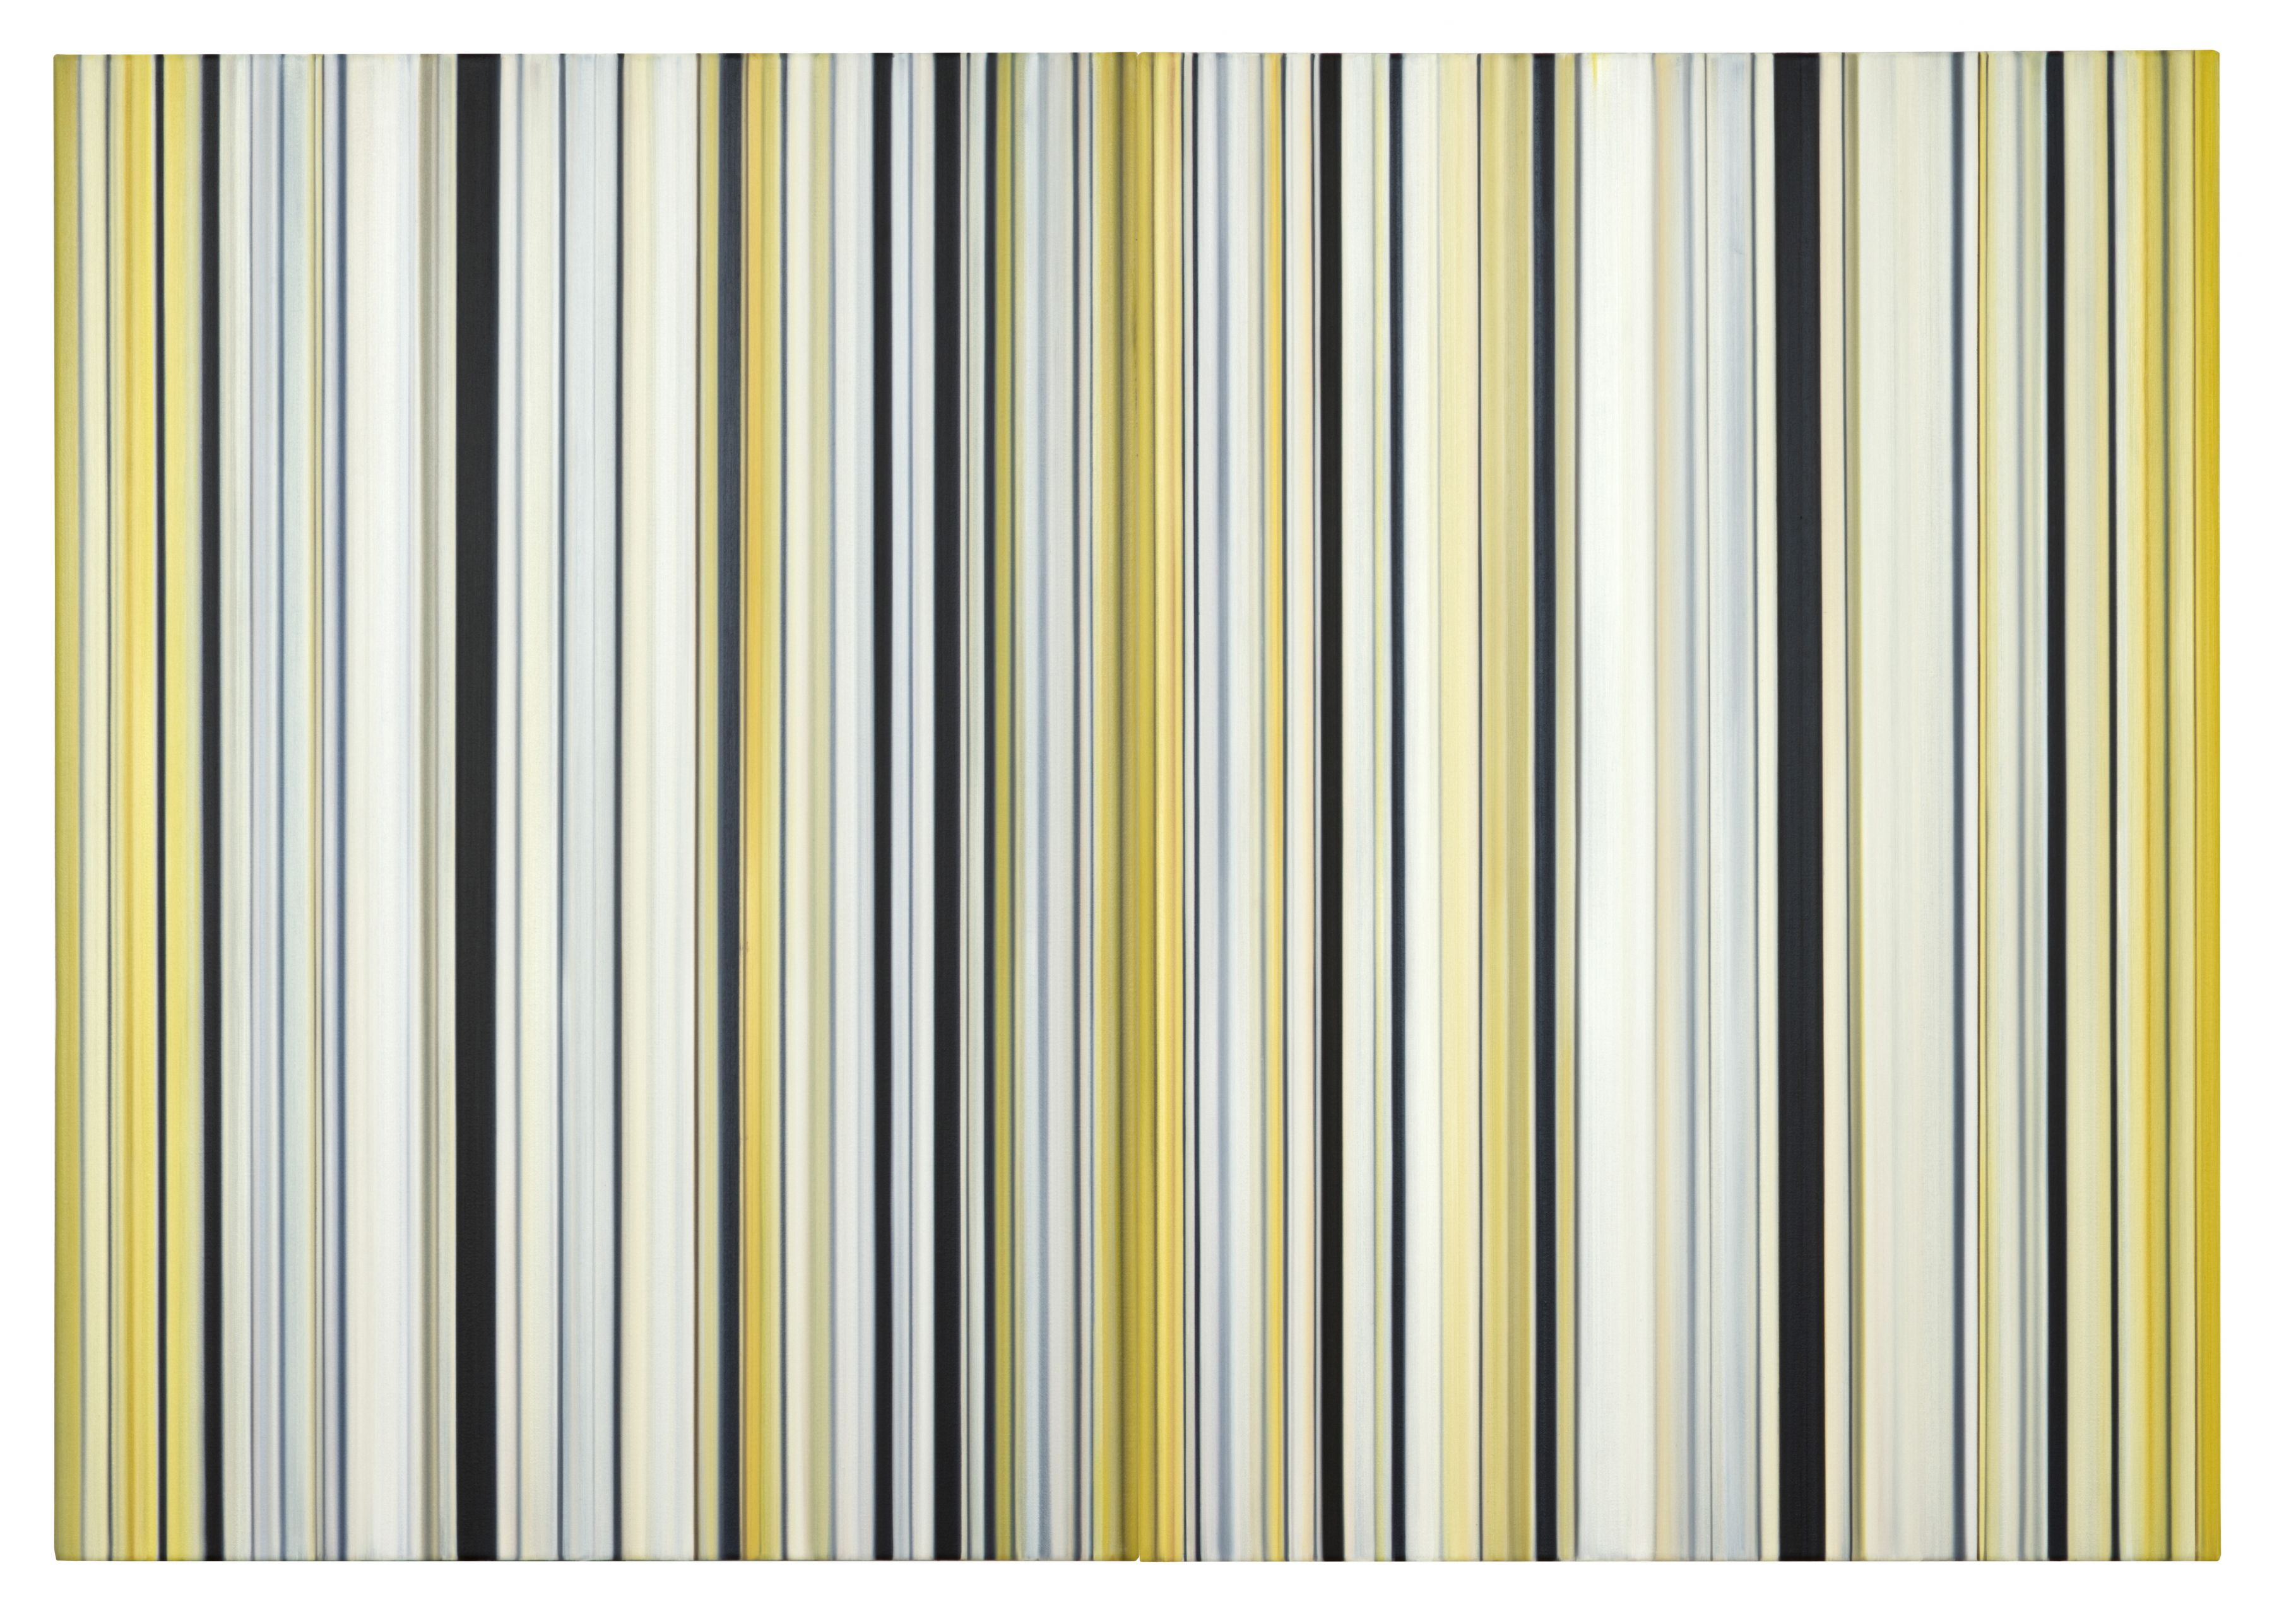 Stripes Nr. 93 + 94, 2016, Oil on Canvas